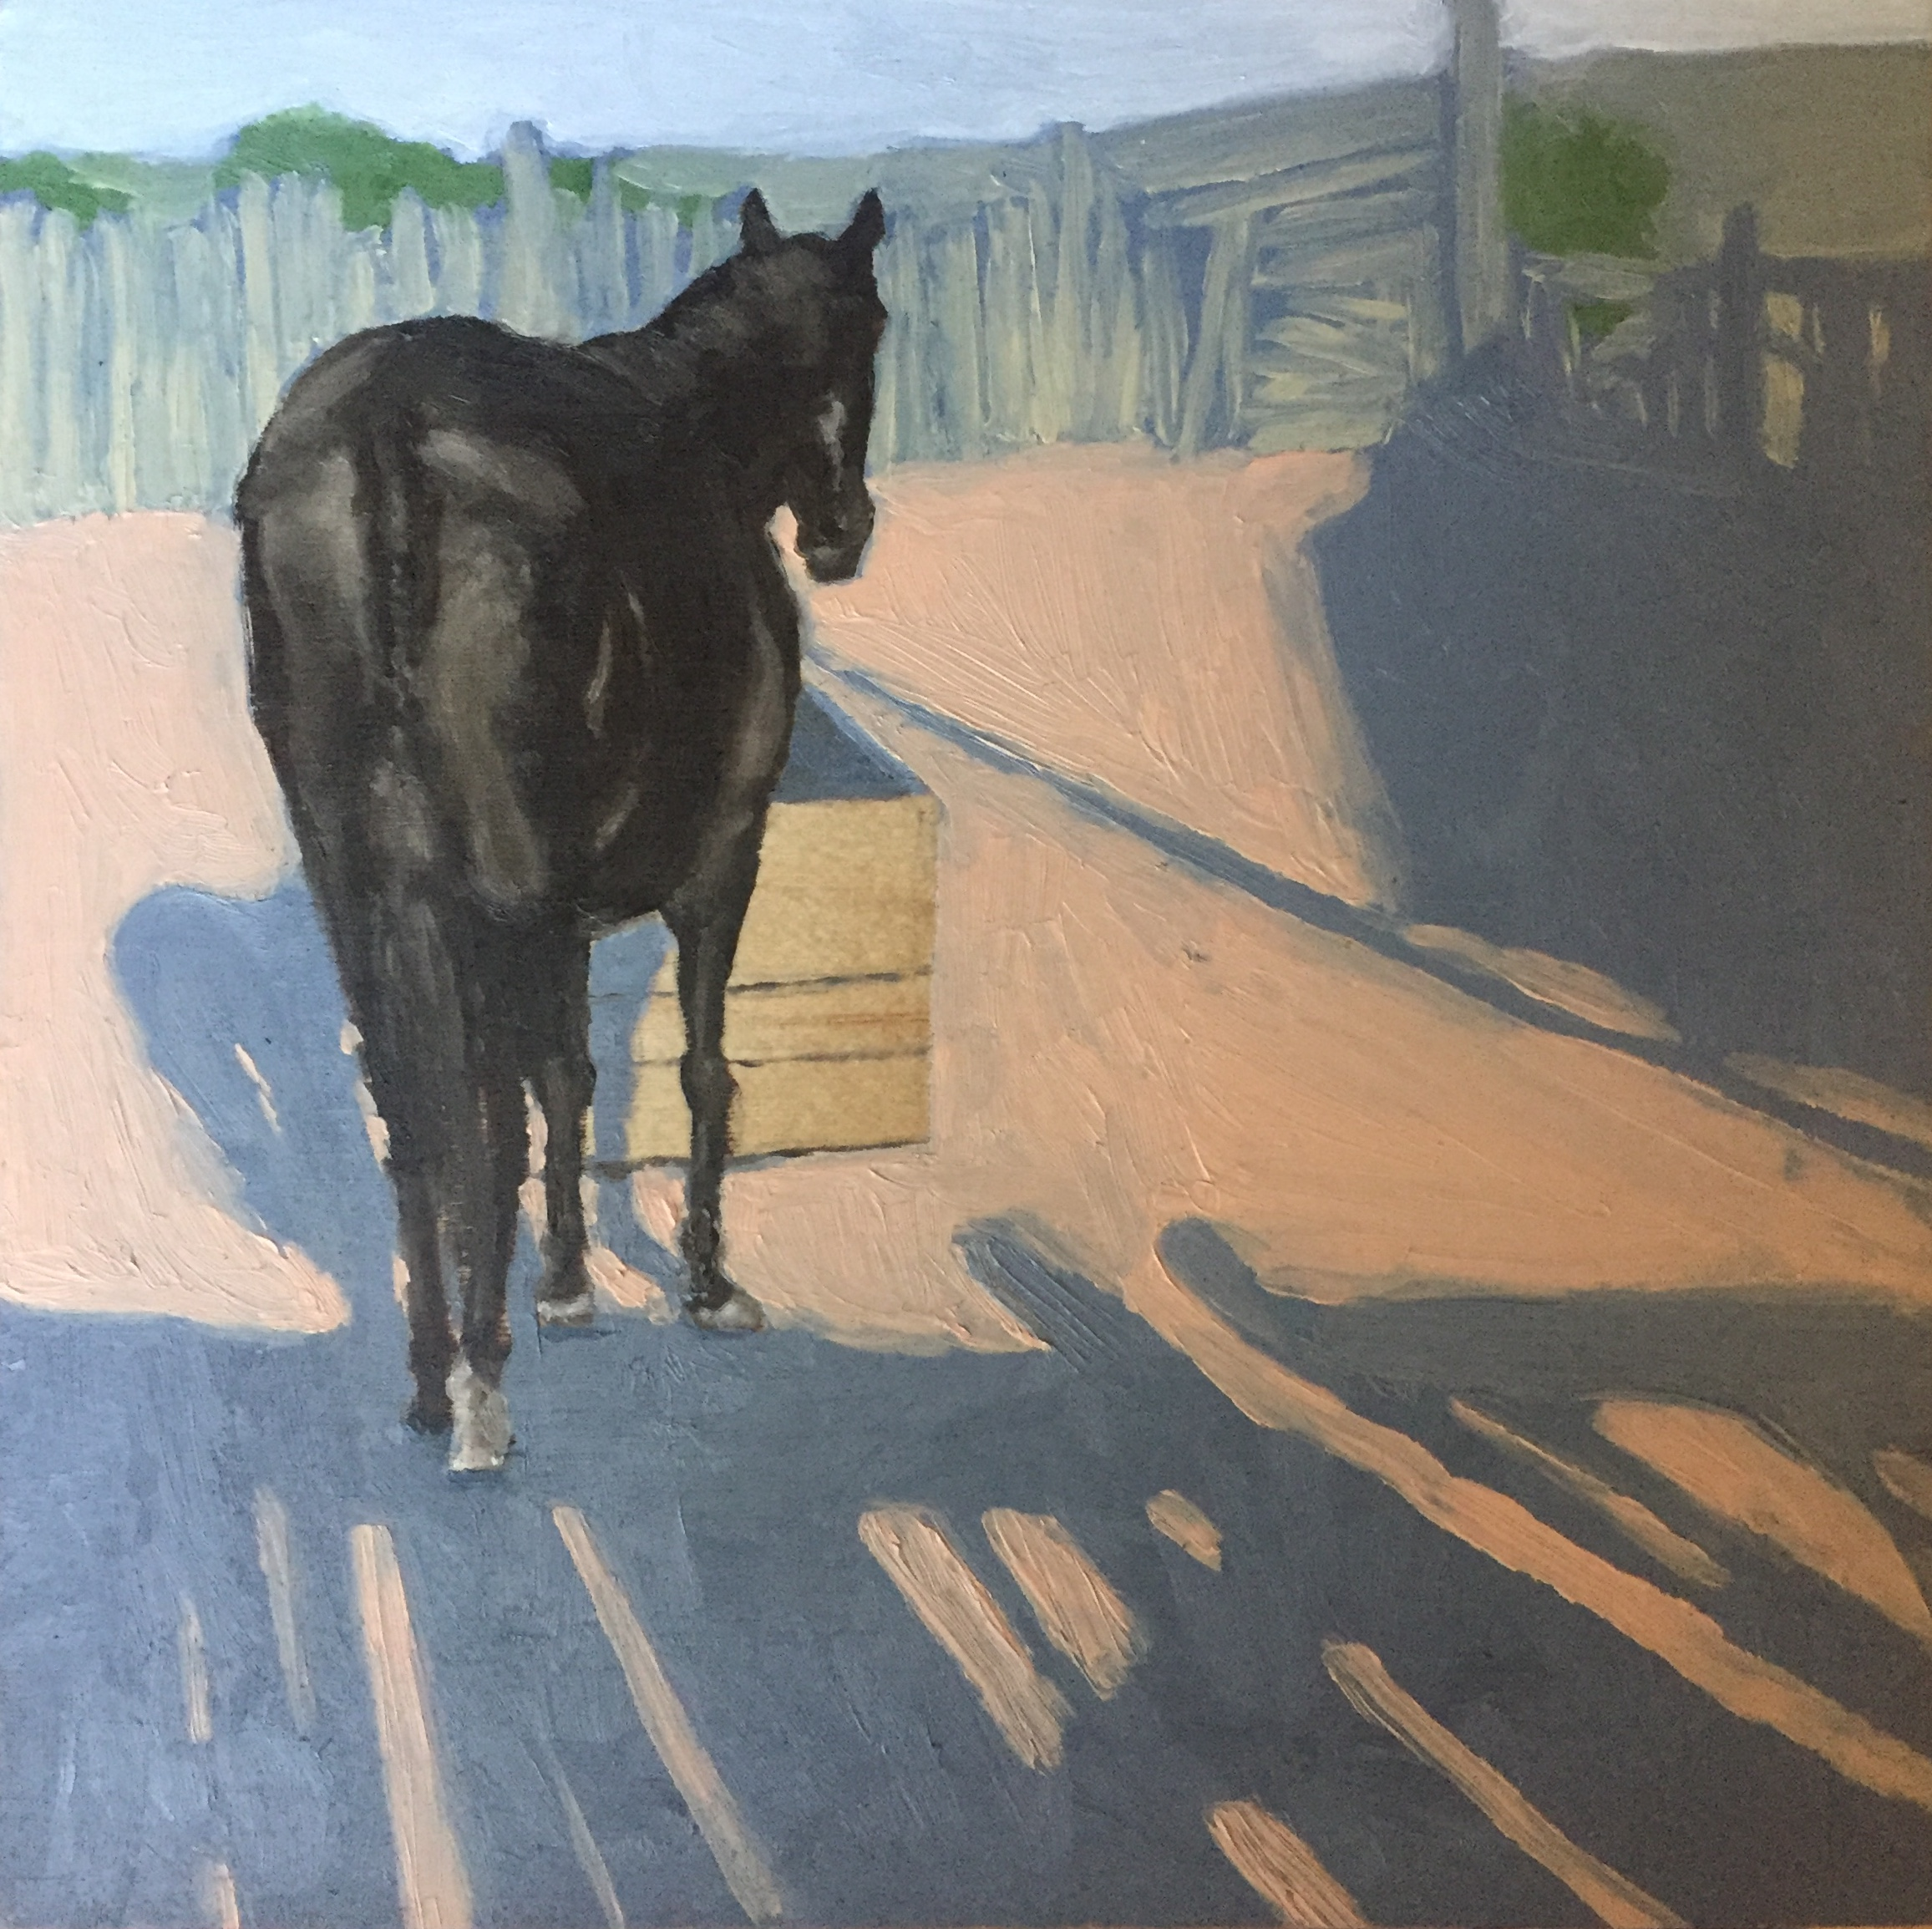 Painting of a black horse with it's back to the viewer standing in front of a water trough.